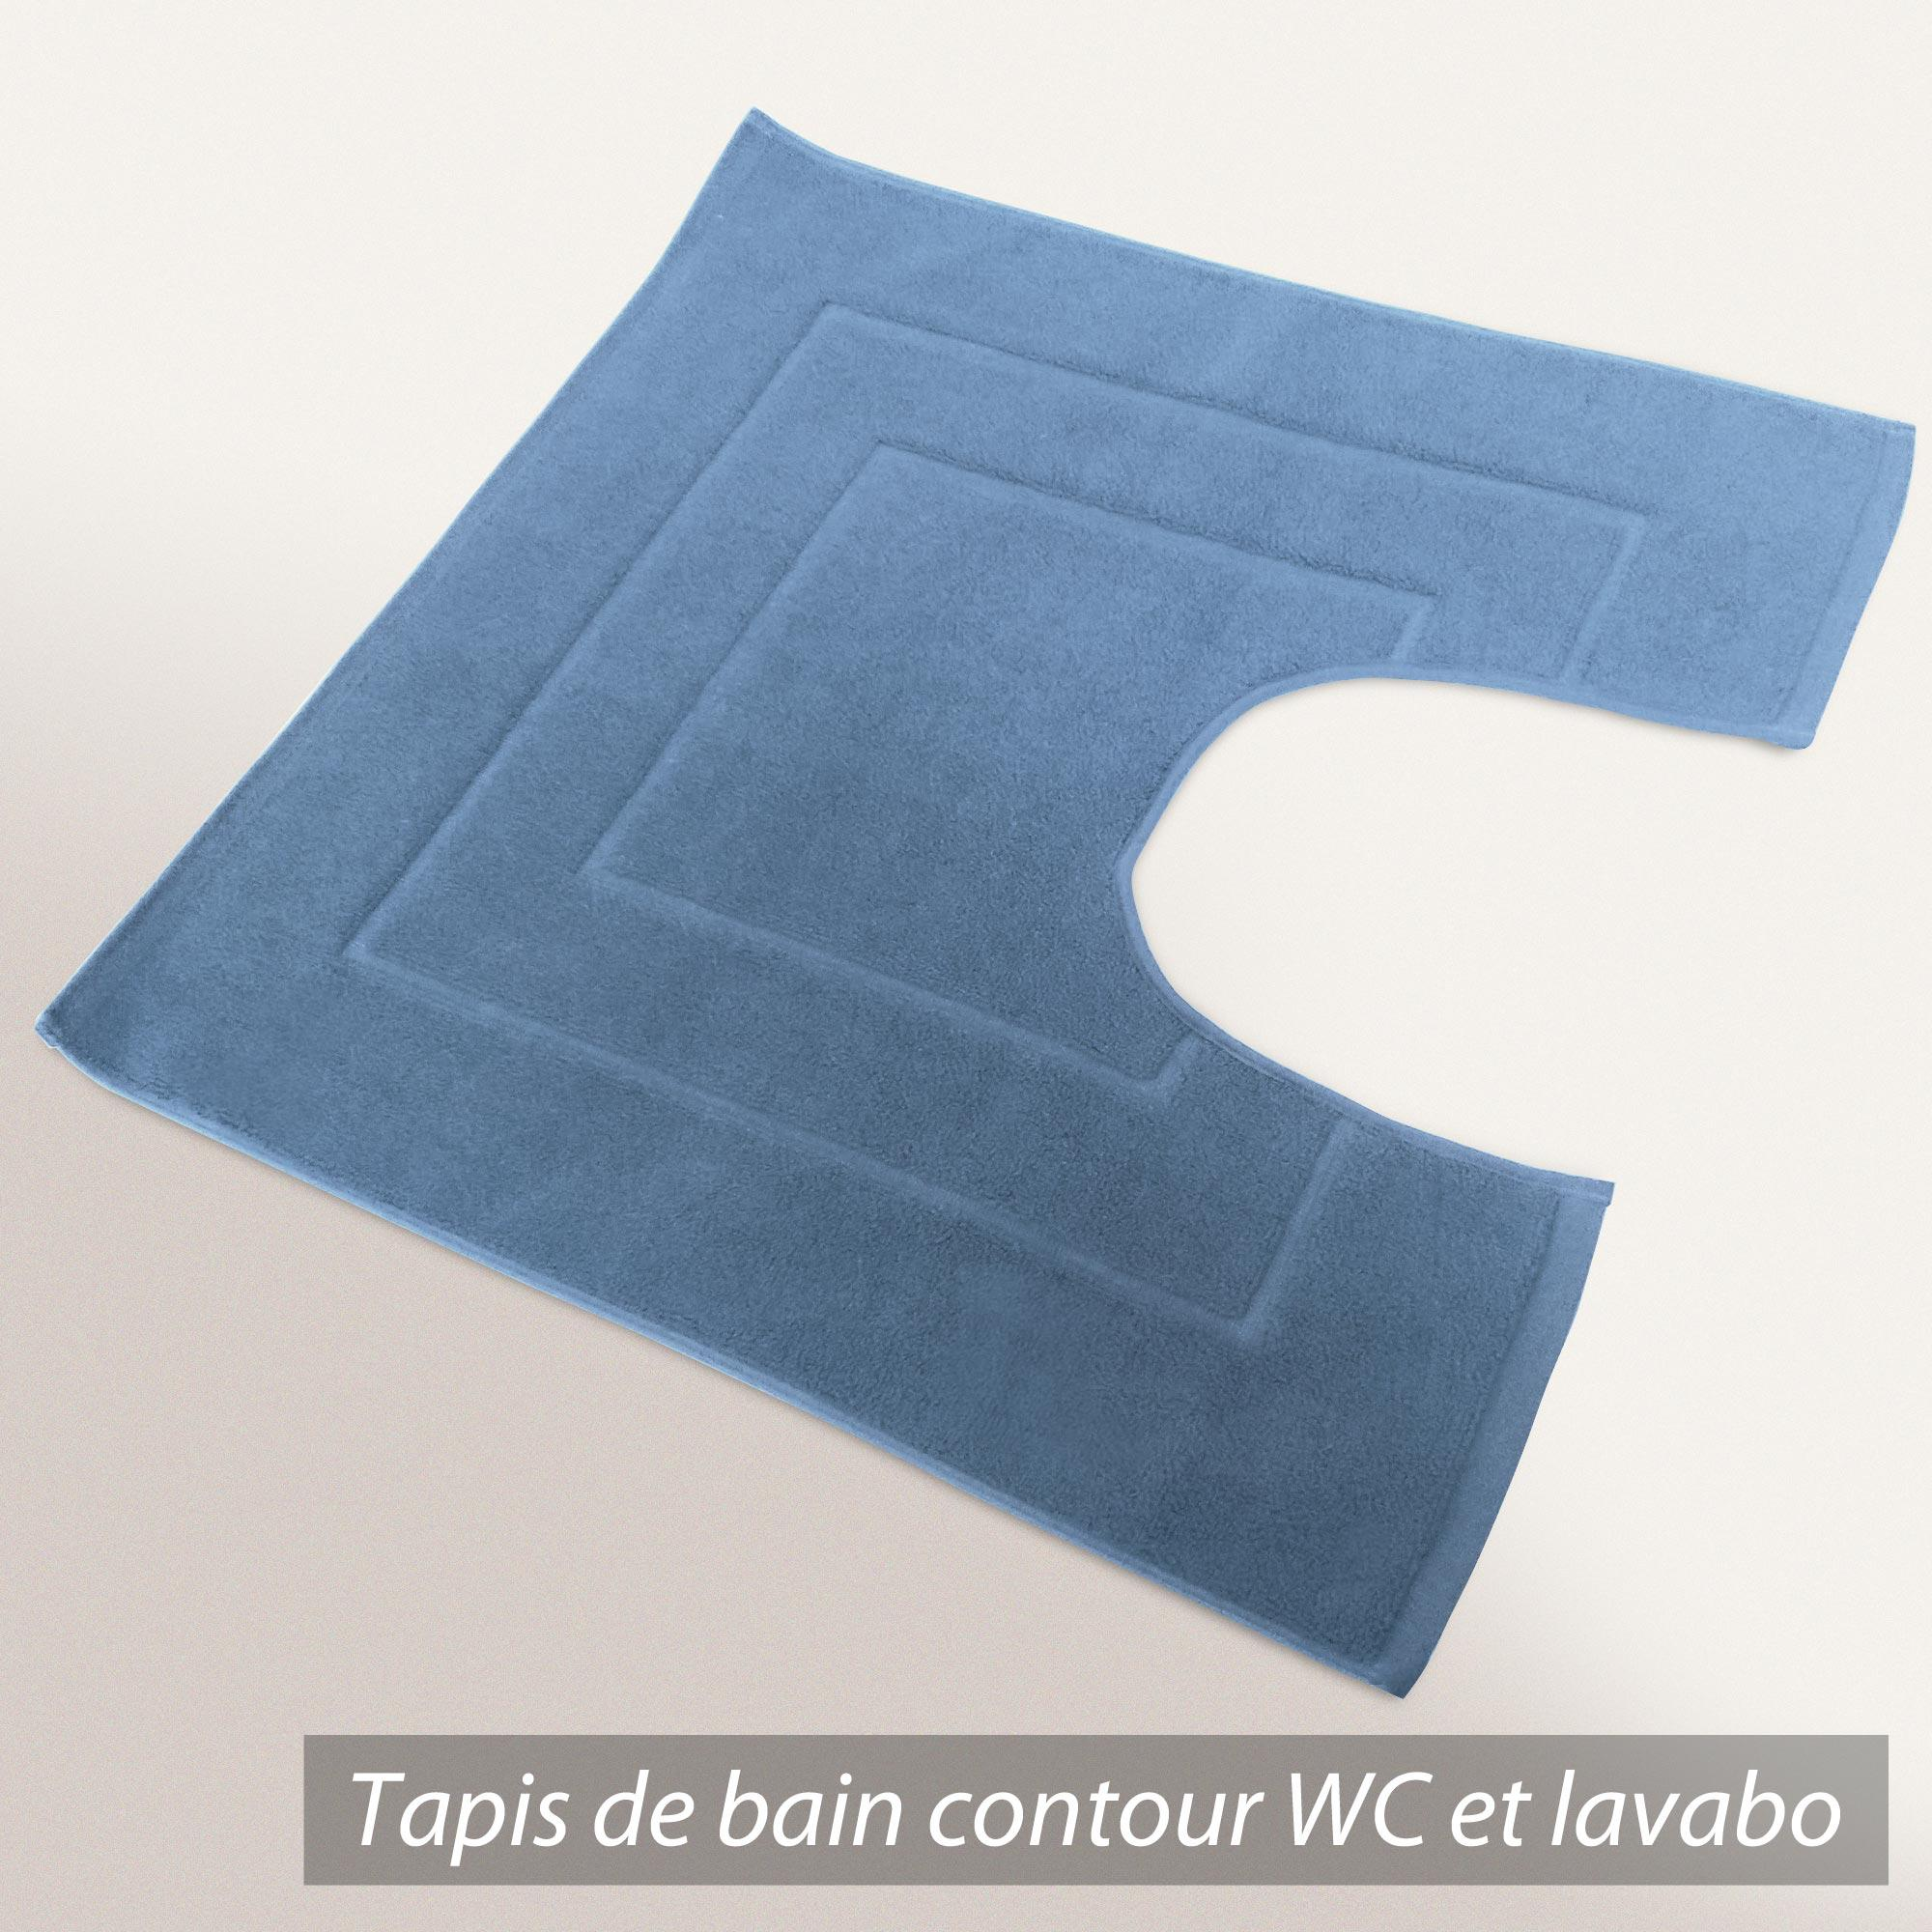 tapis de bain contour wc 60x60cm uni coton flair bleu. Black Bedroom Furniture Sets. Home Design Ideas